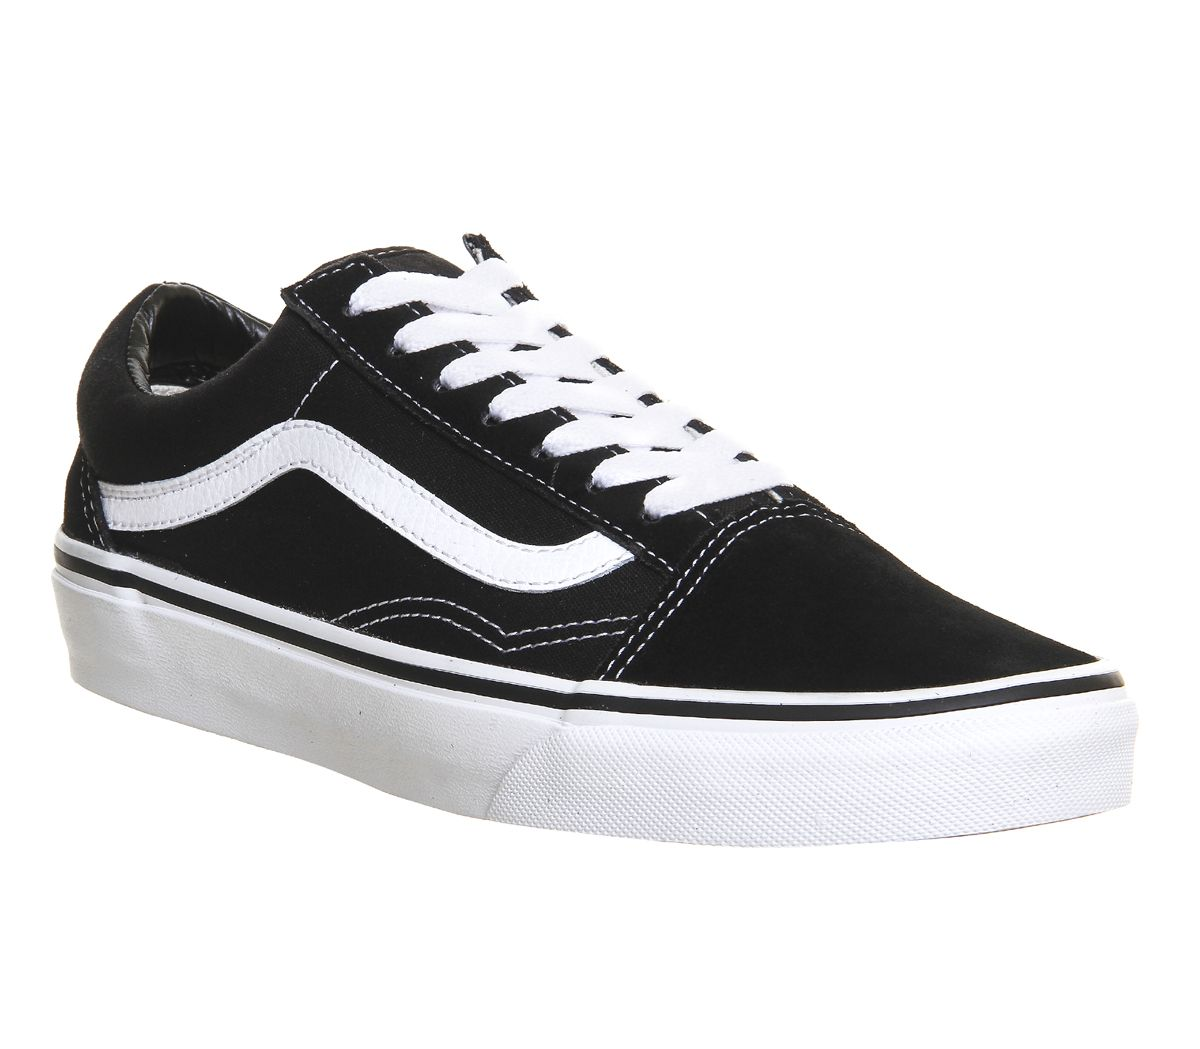 912df7aa2b5 Vans Old Skool Trainers Black - Unisex Sports